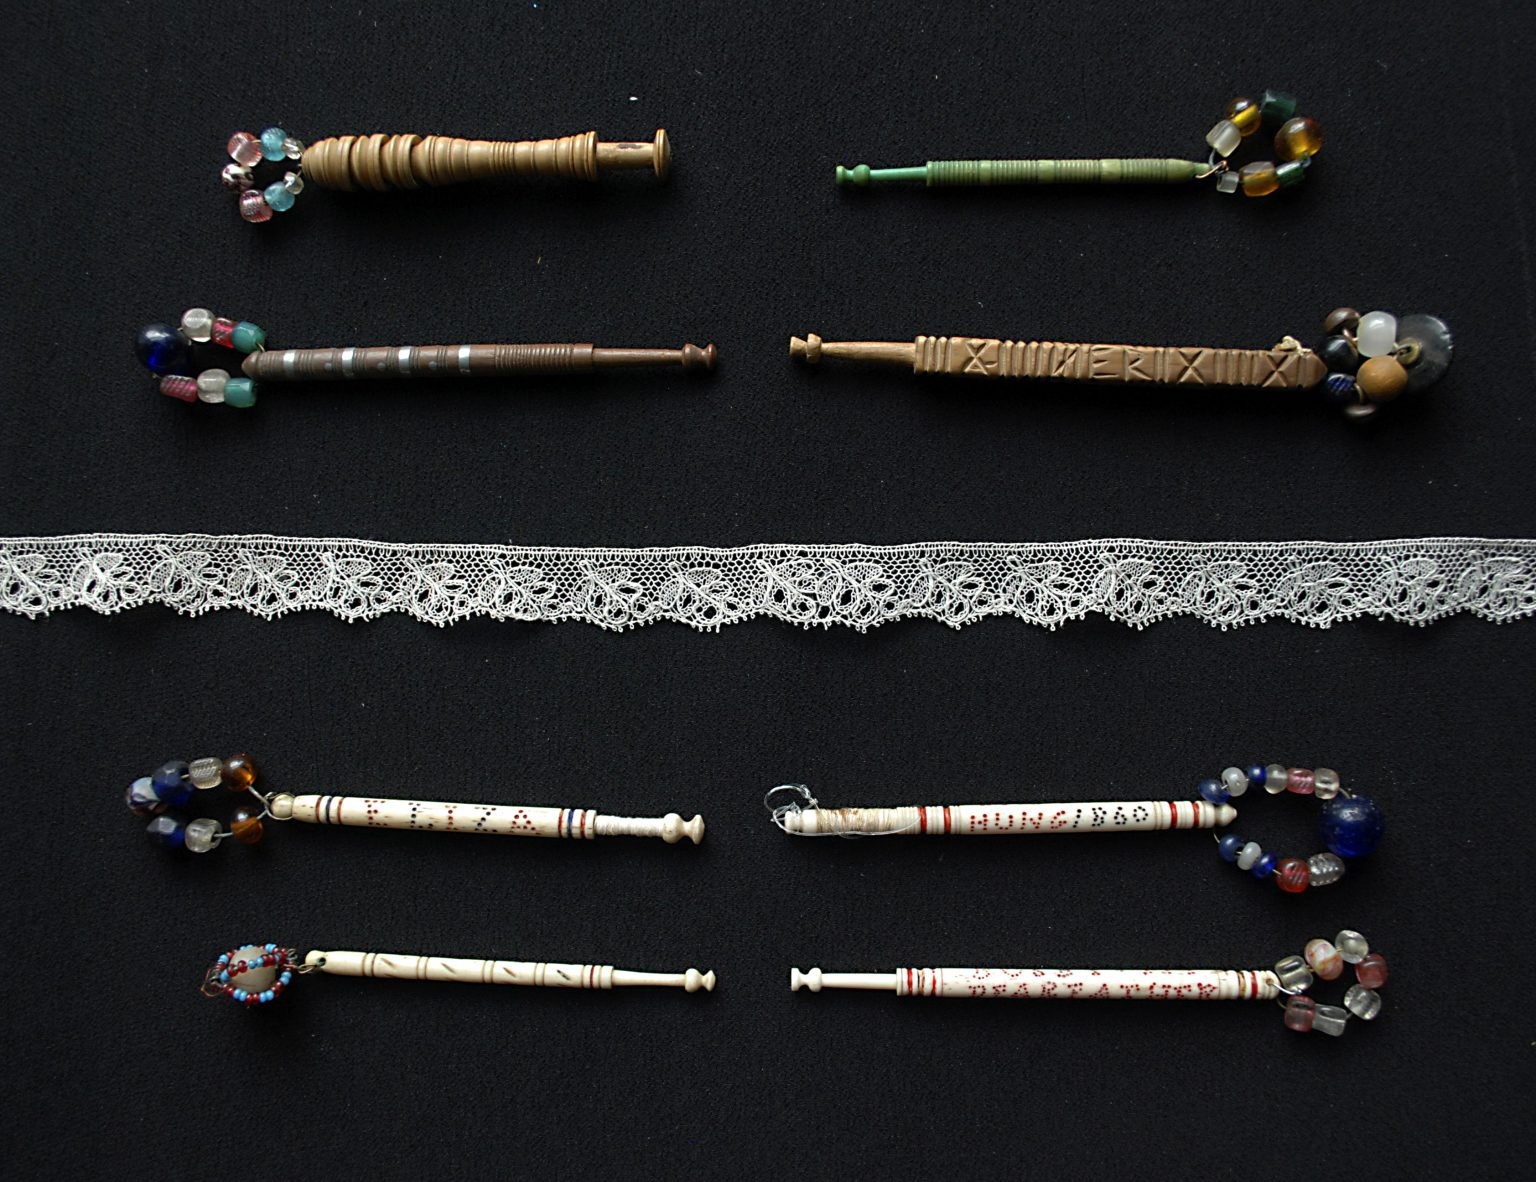 Bucks Point Lace and Lace Bobbins